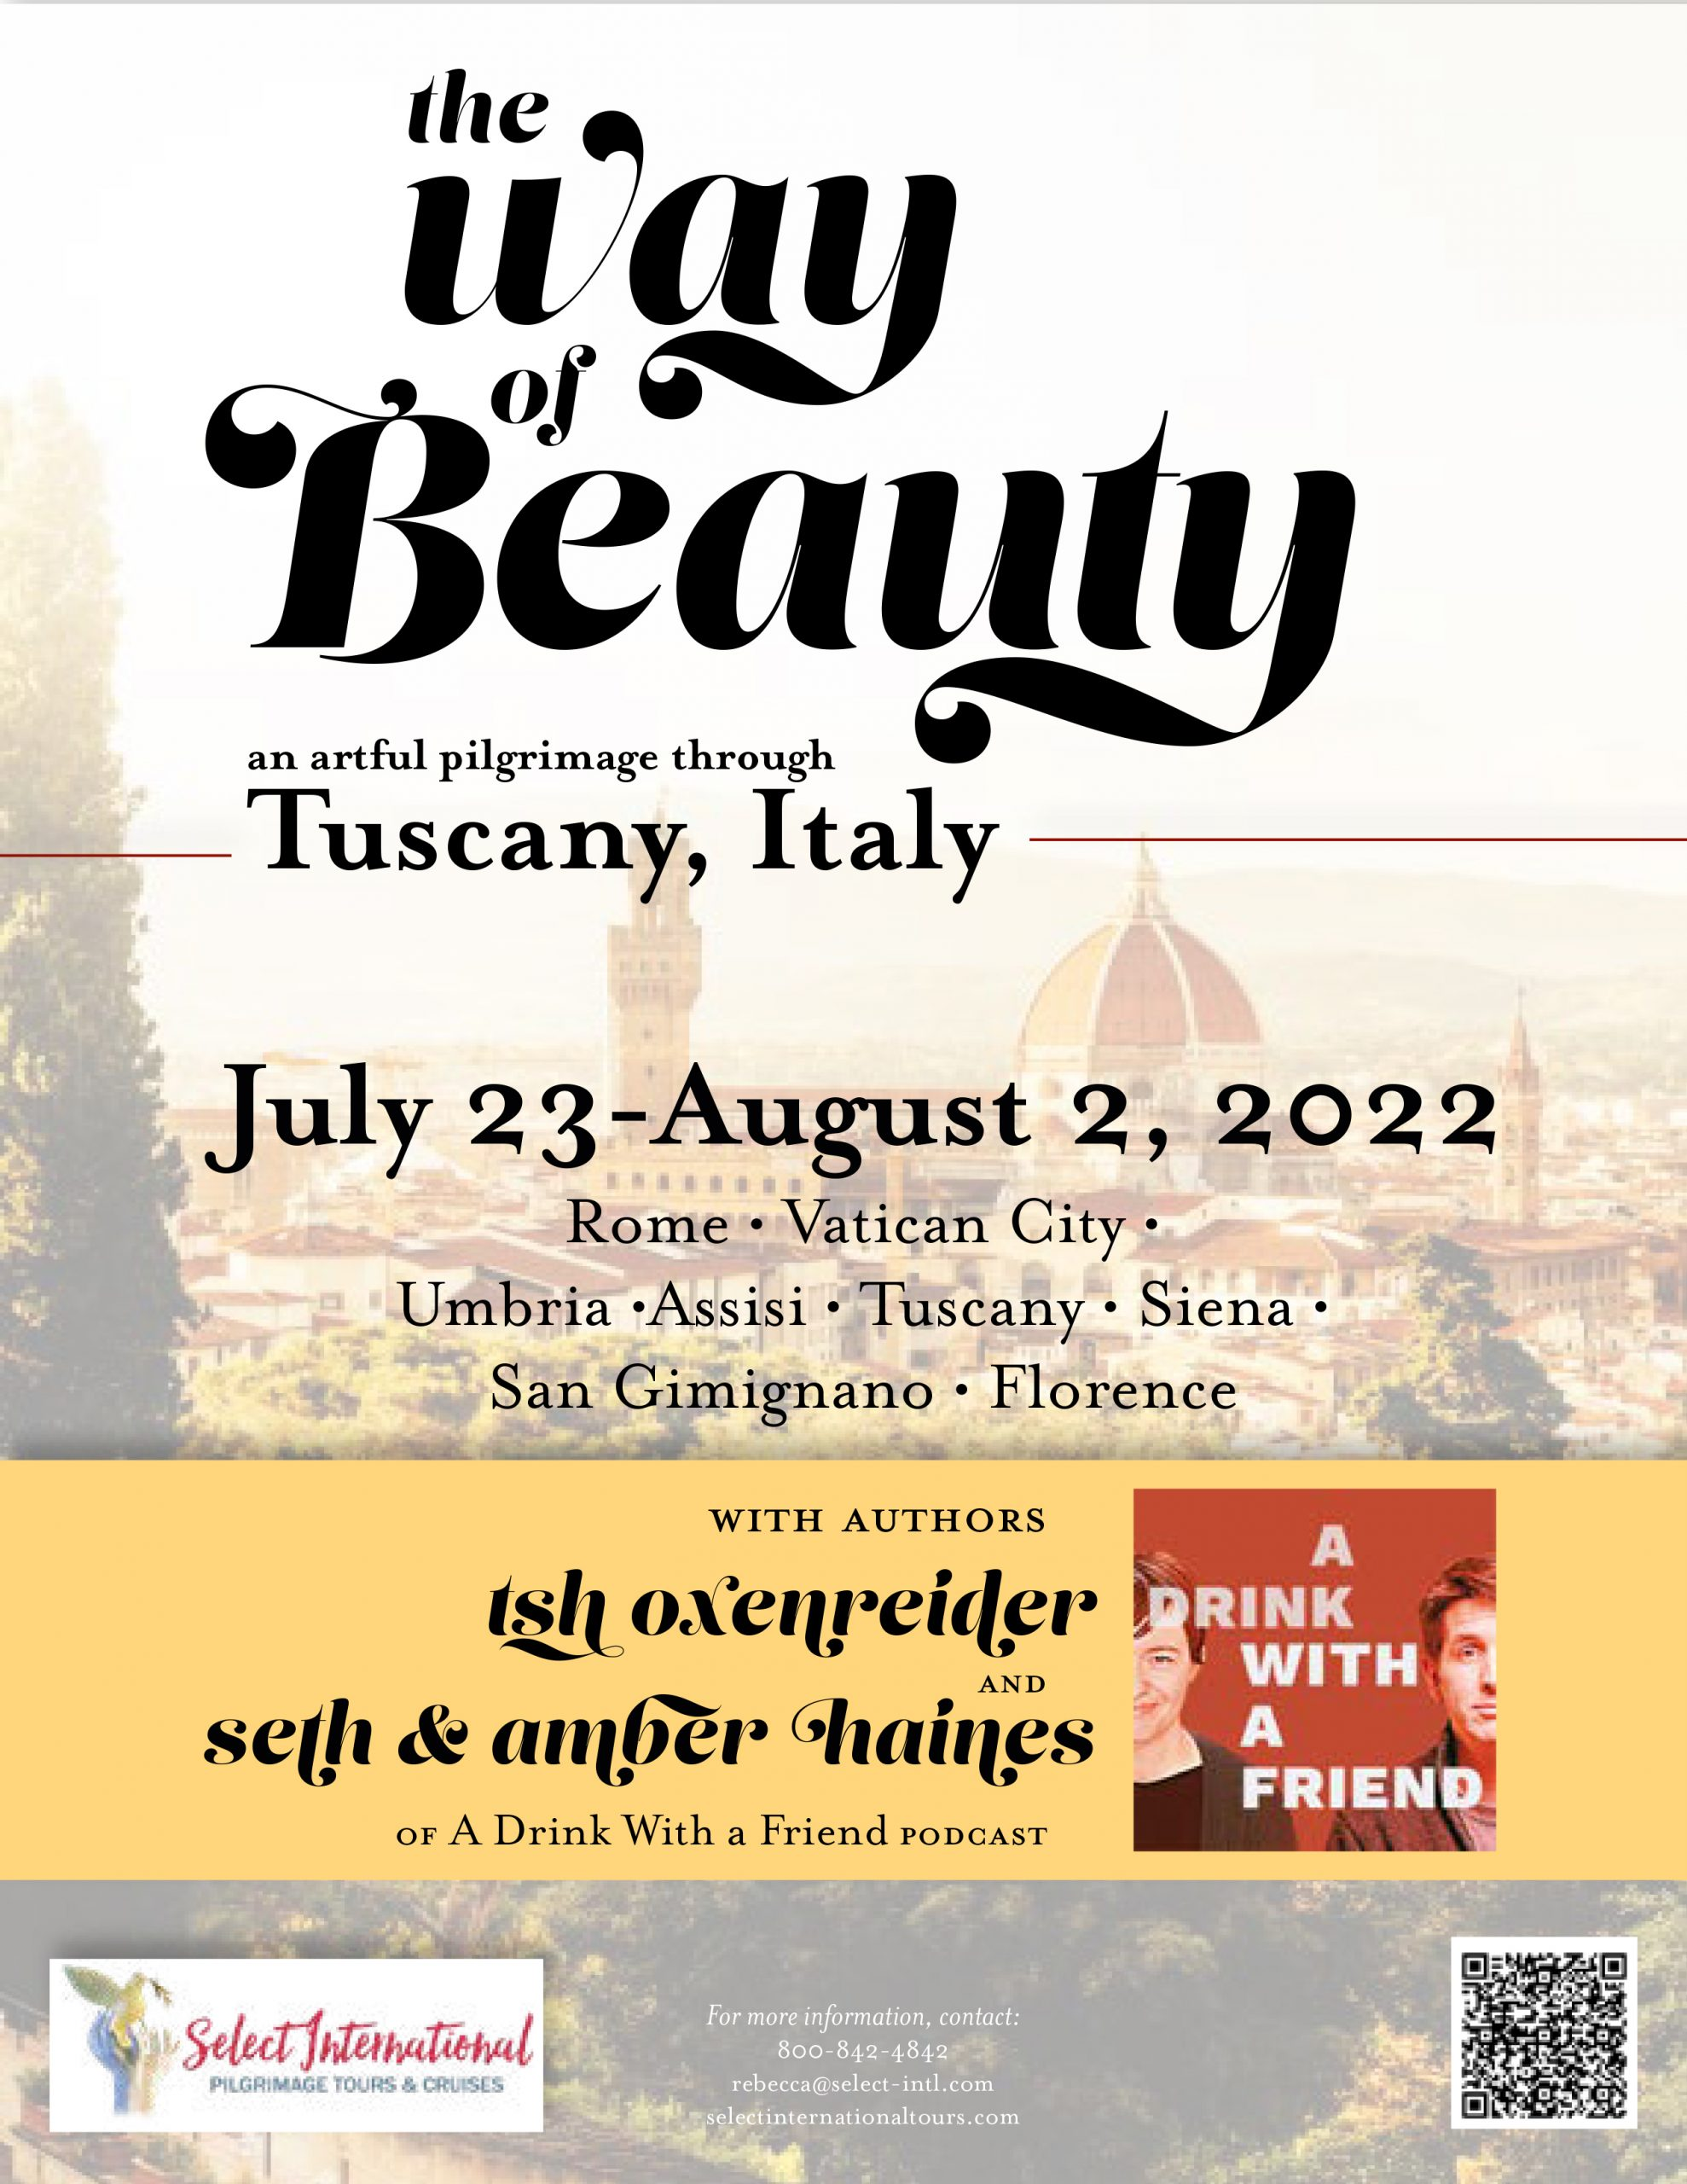 The Way of Beauty an Artful Pilgrimage Through Italy July 23 - August 2, 2022 - 22RS07ITTO